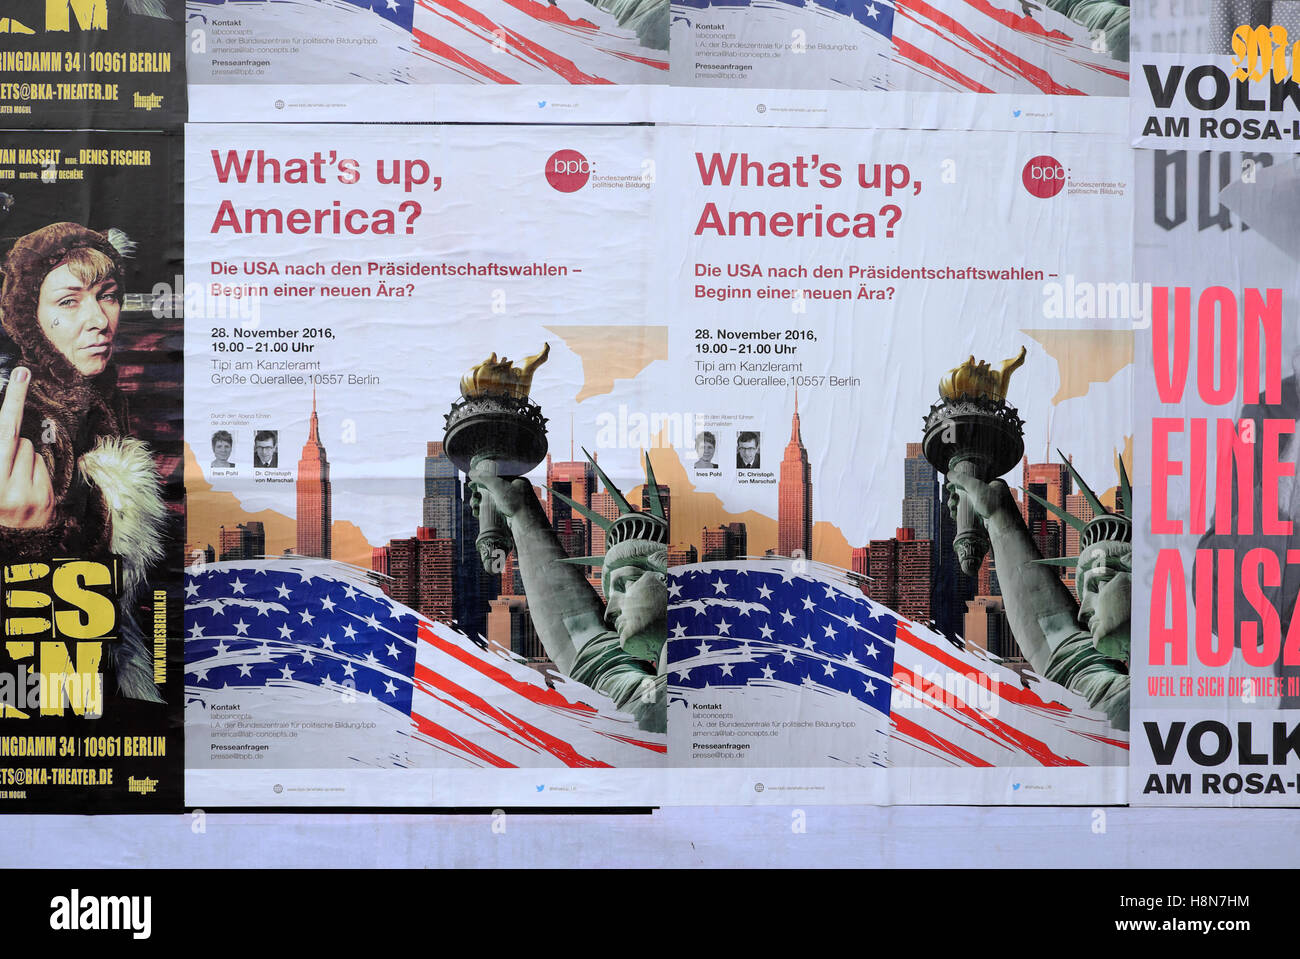 'What's up, America?'  bpb poster on billboard during US American election in Berlin  Germany  2016 - Stock Image